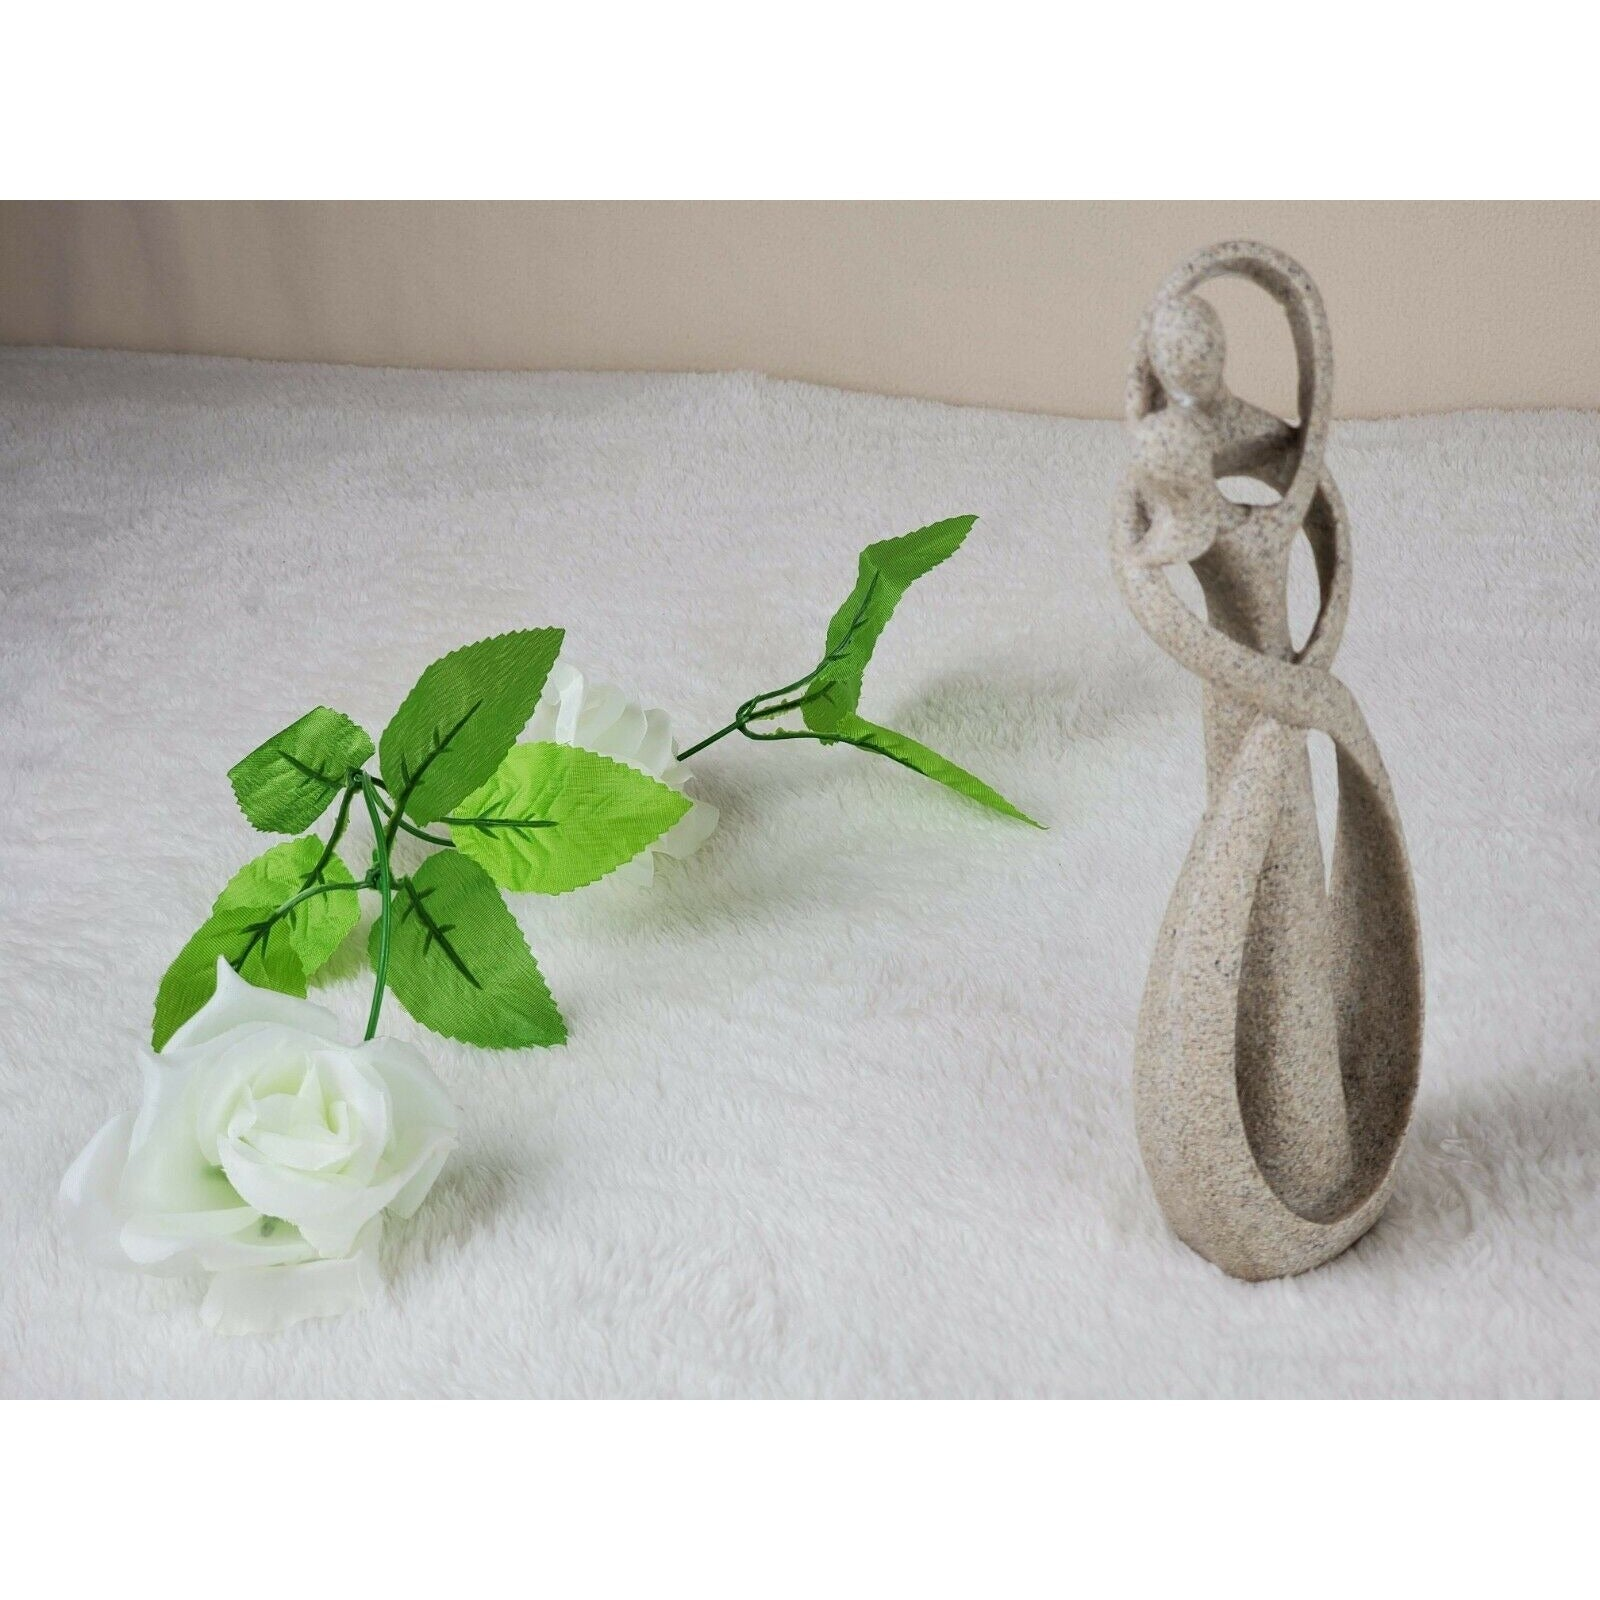 Sandstone Kissing Lover Statuettes Wedding Statue Decor Anniversary Souvenirs